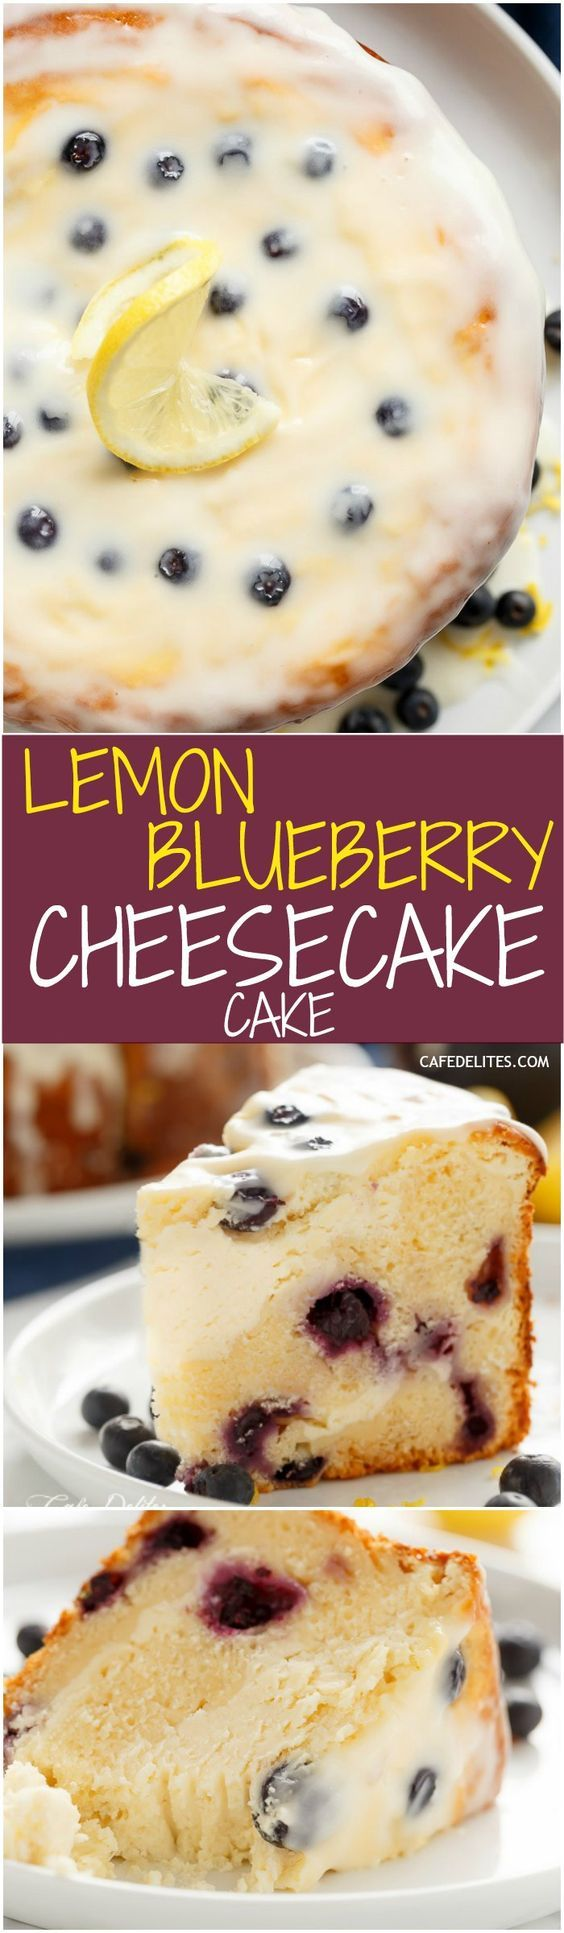 Blaubeer Zitronen Kuchen - ganz leicht und so lecker *** Blueberry Lemon Cheesecake Cake with a Lemon Cream Cheese Glaze to kick start your season! Baked in the one pan Easy to make with no layering